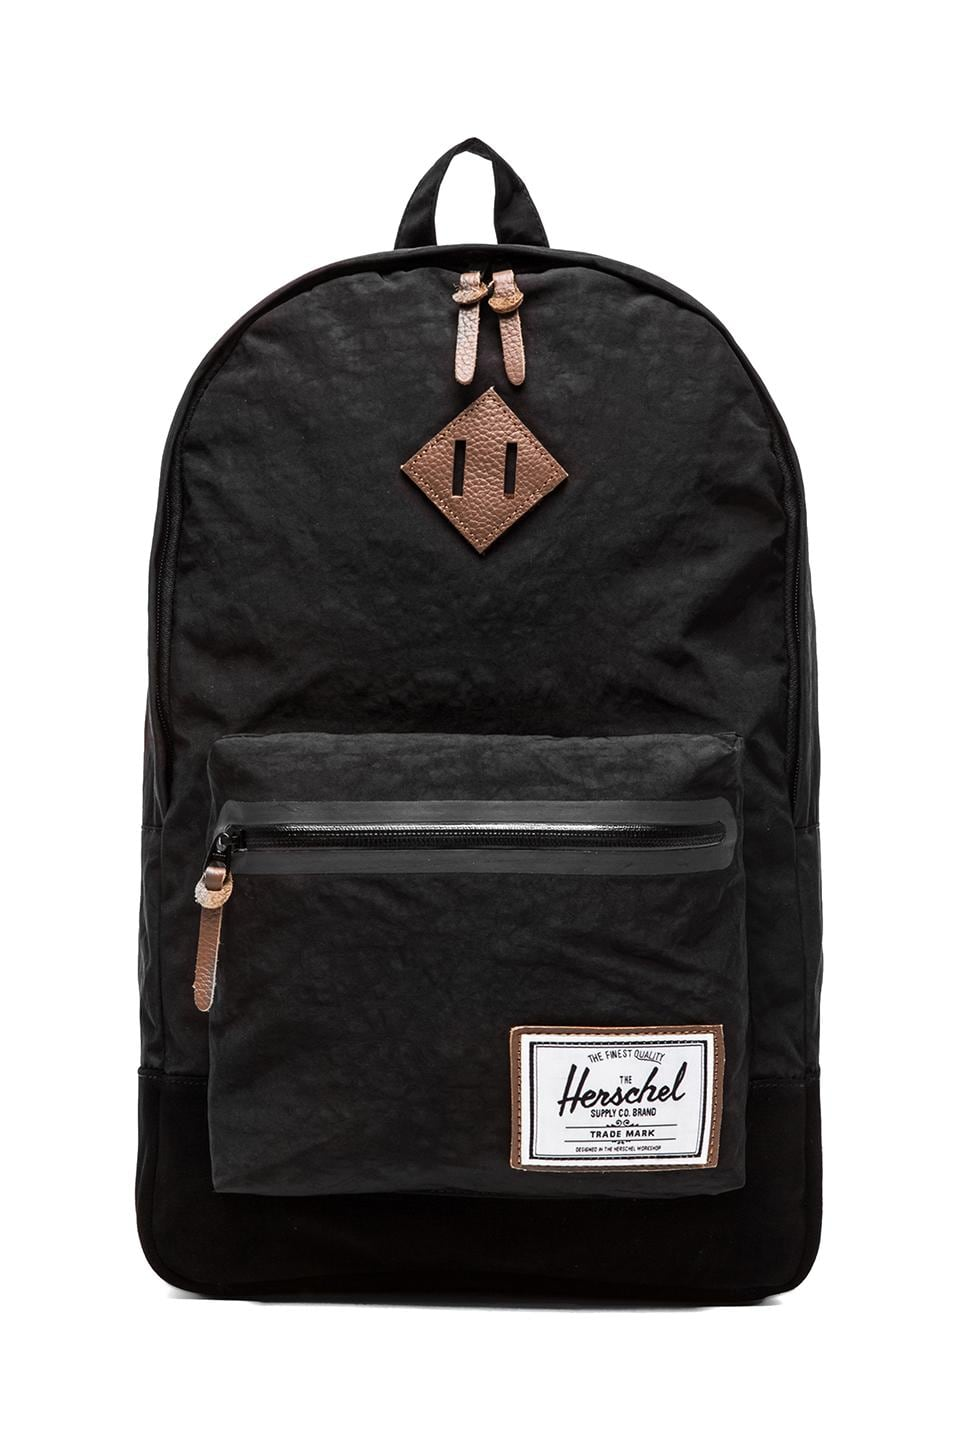 Herschel Supply Co. Bad Hills Collection Heritage Plus Backpack in Black